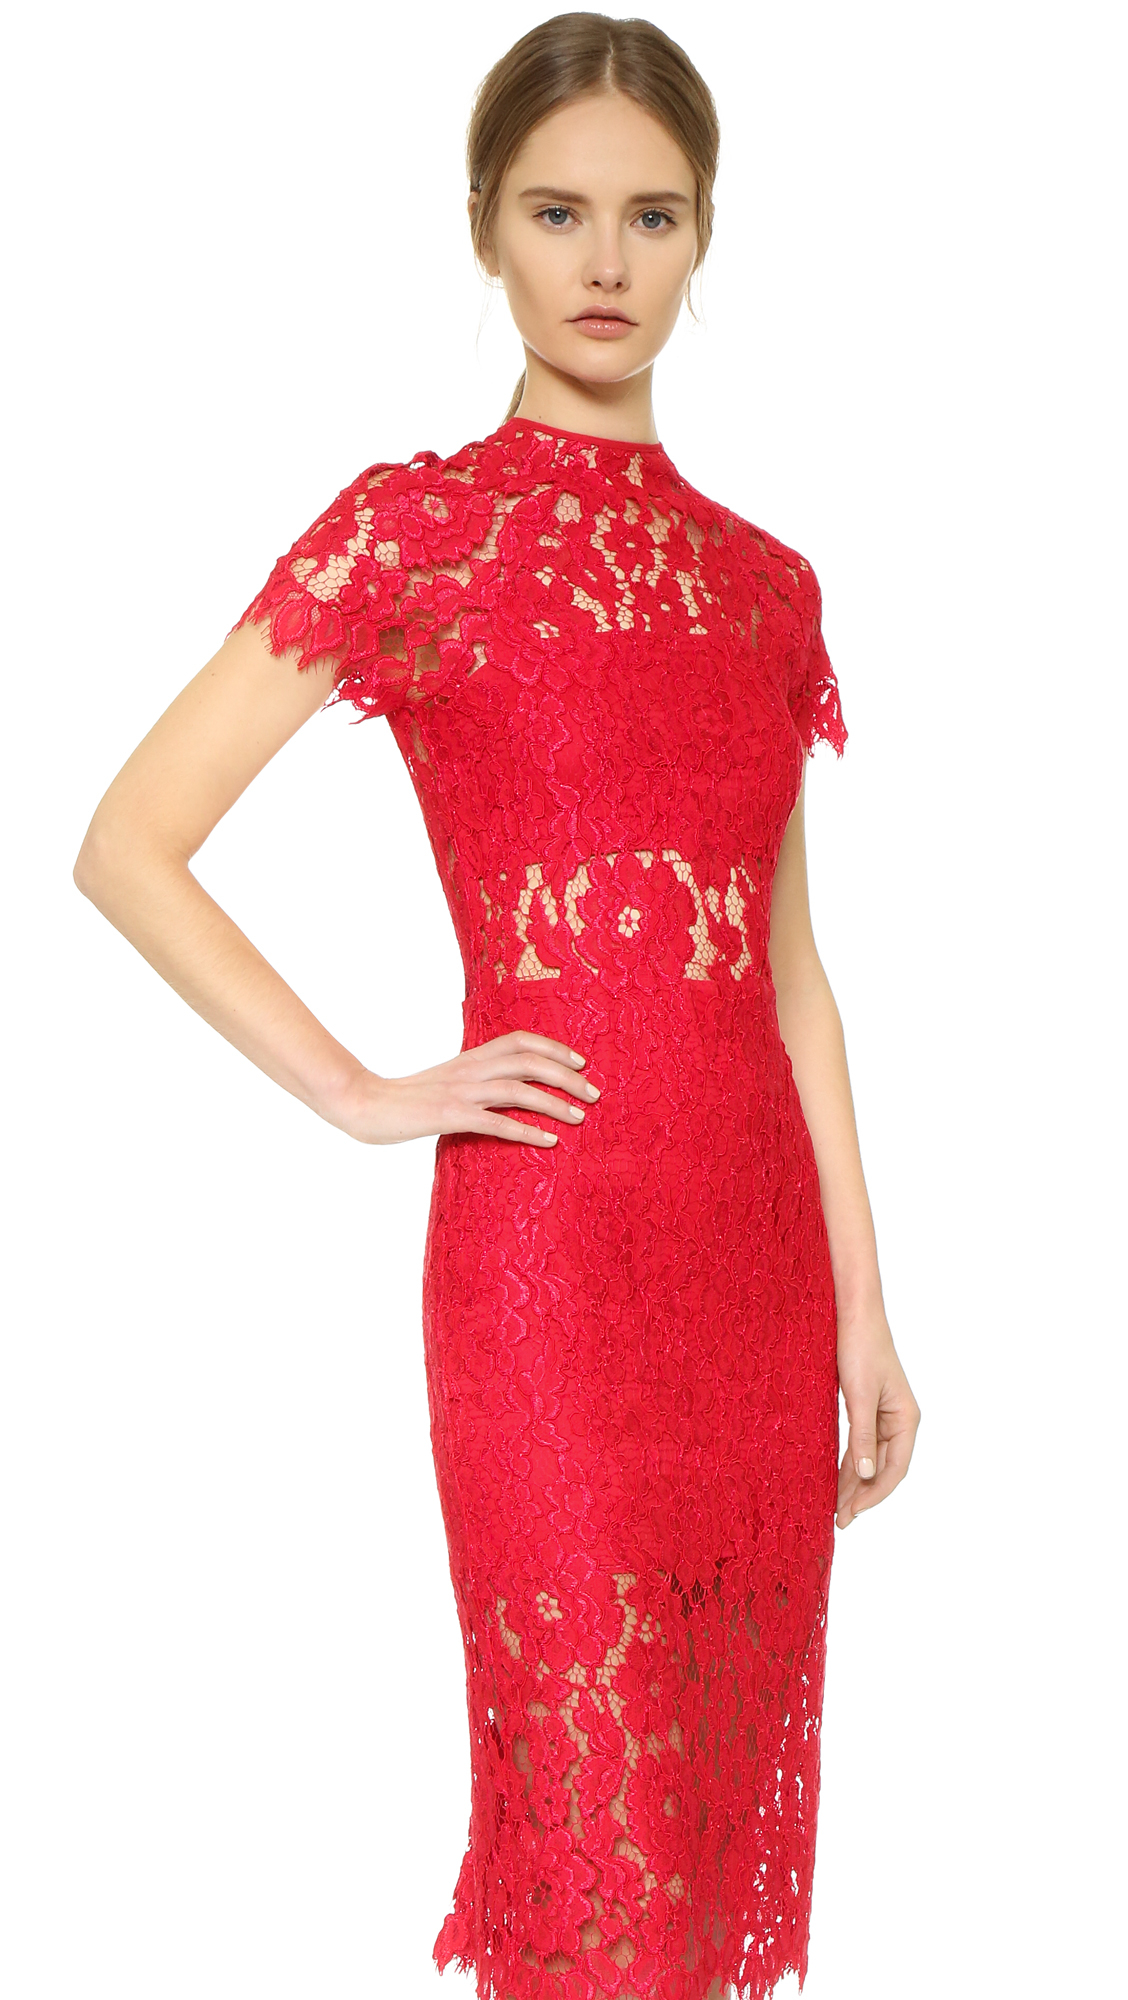 Alexis Leona Lace Dress - Red in Red | Lyst